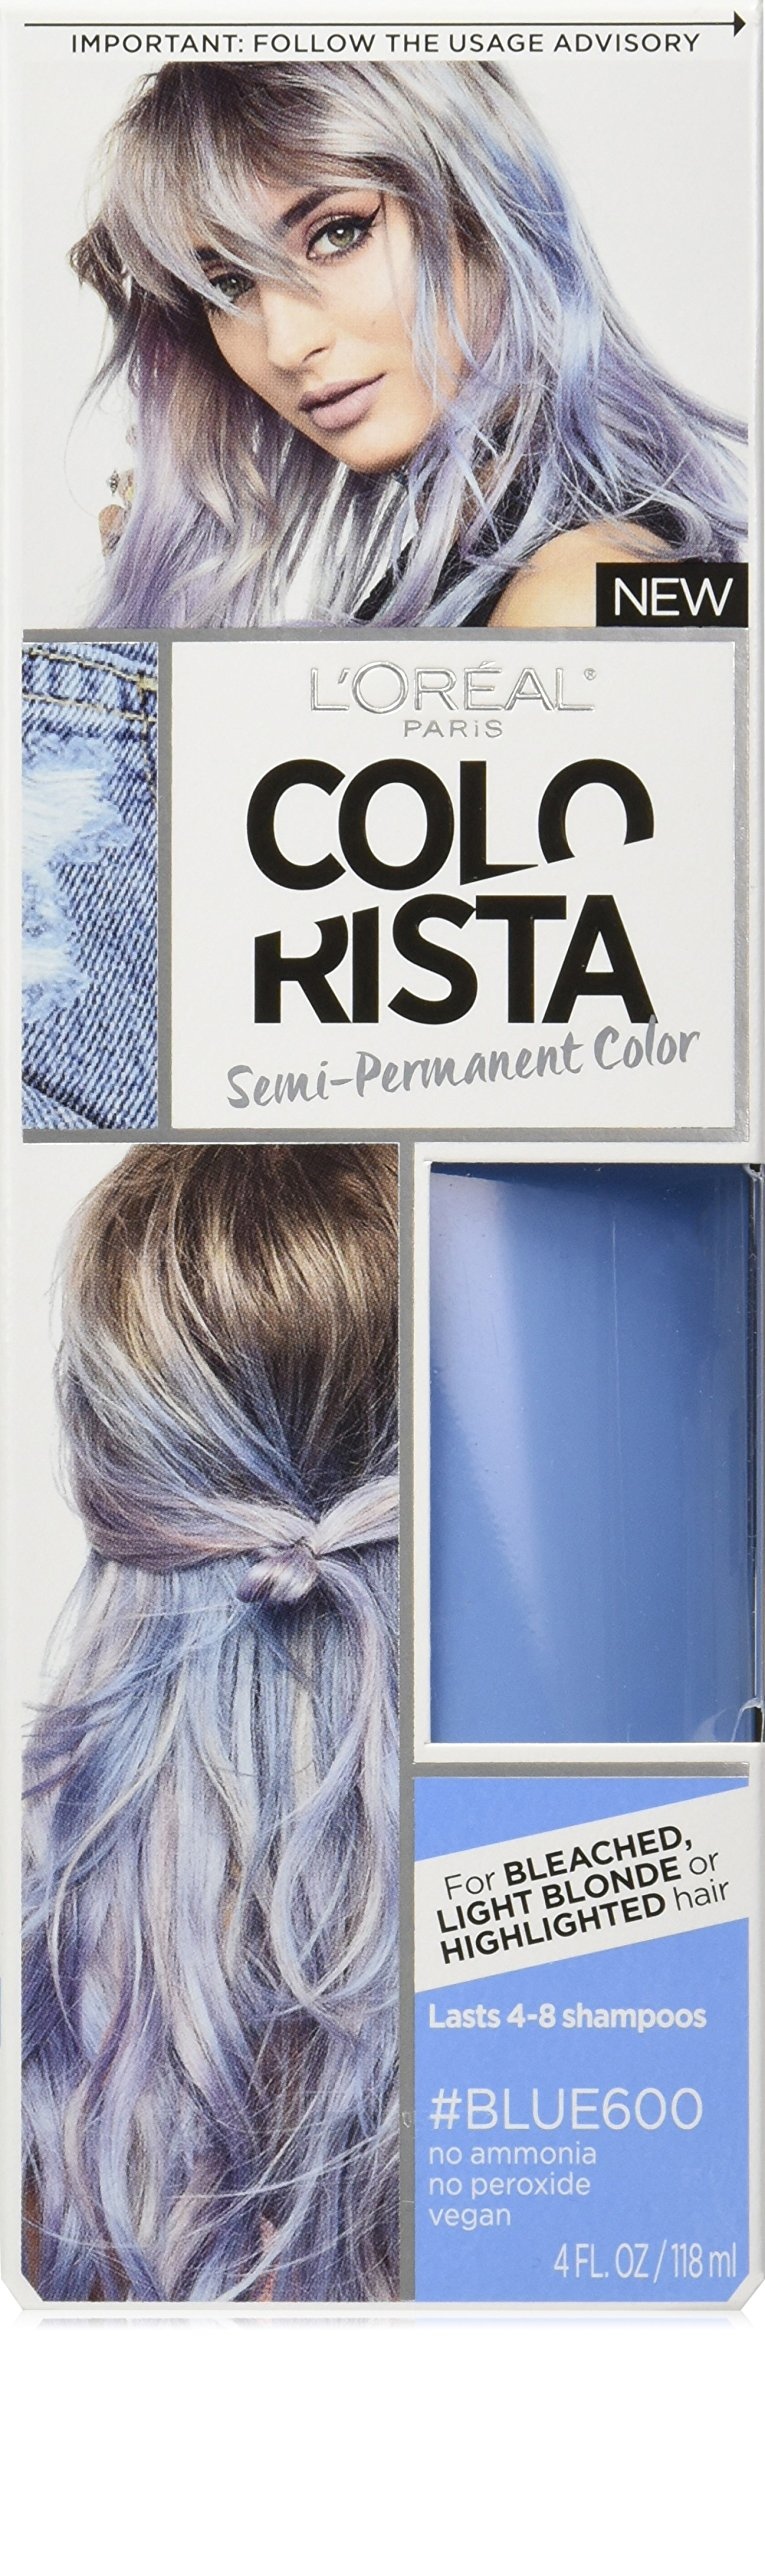 L'Oréal Paris Colorista Semi-Permanent Hair Color for Light Bleached or Blondes, Blue